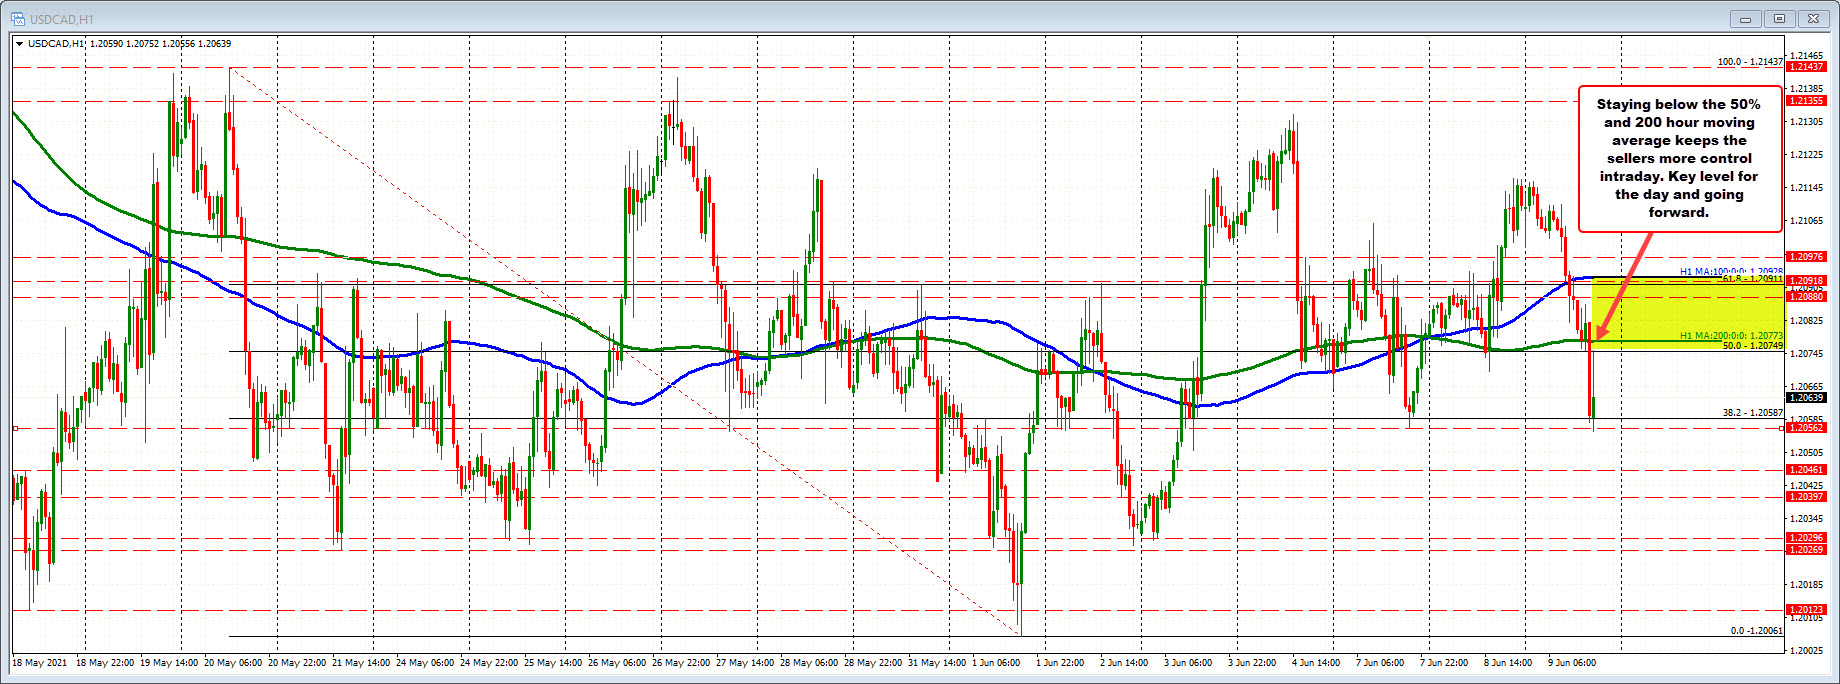 200 hour moving average at 1.20773_